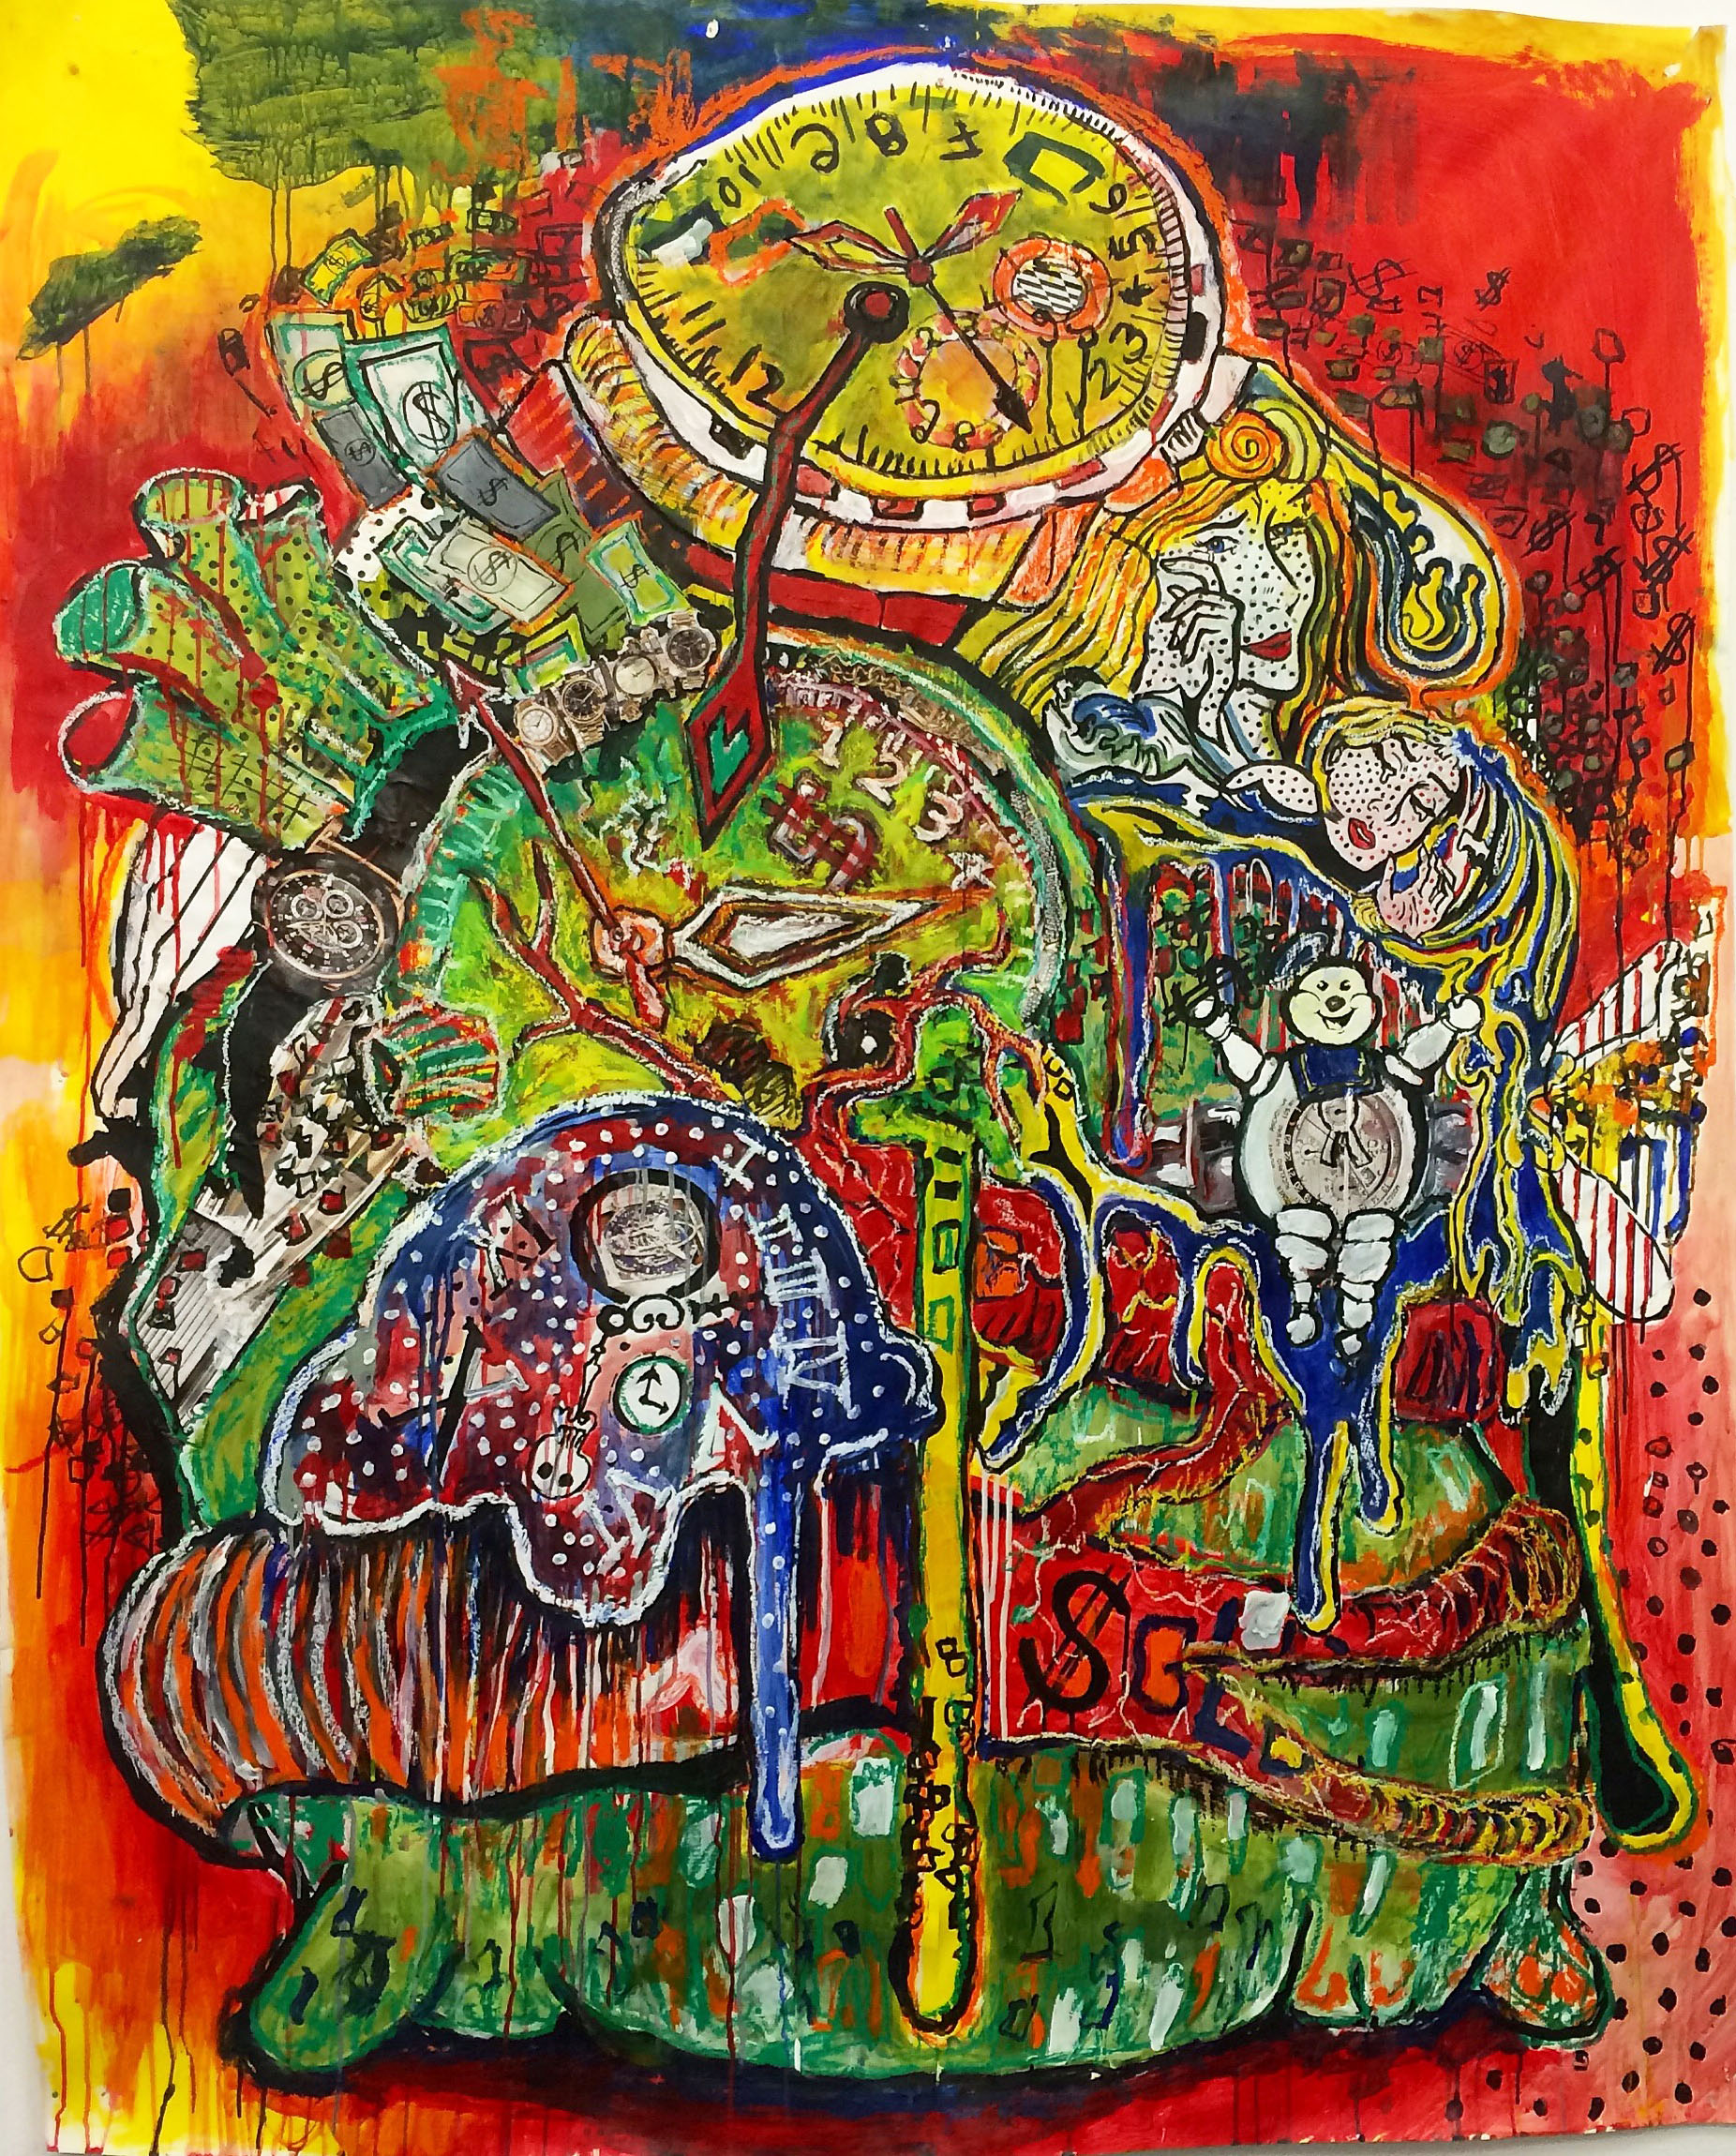 The American Dream (2/2) - 6' X 4' - Mixed Media on Paper - For Sale - Price Upon Request